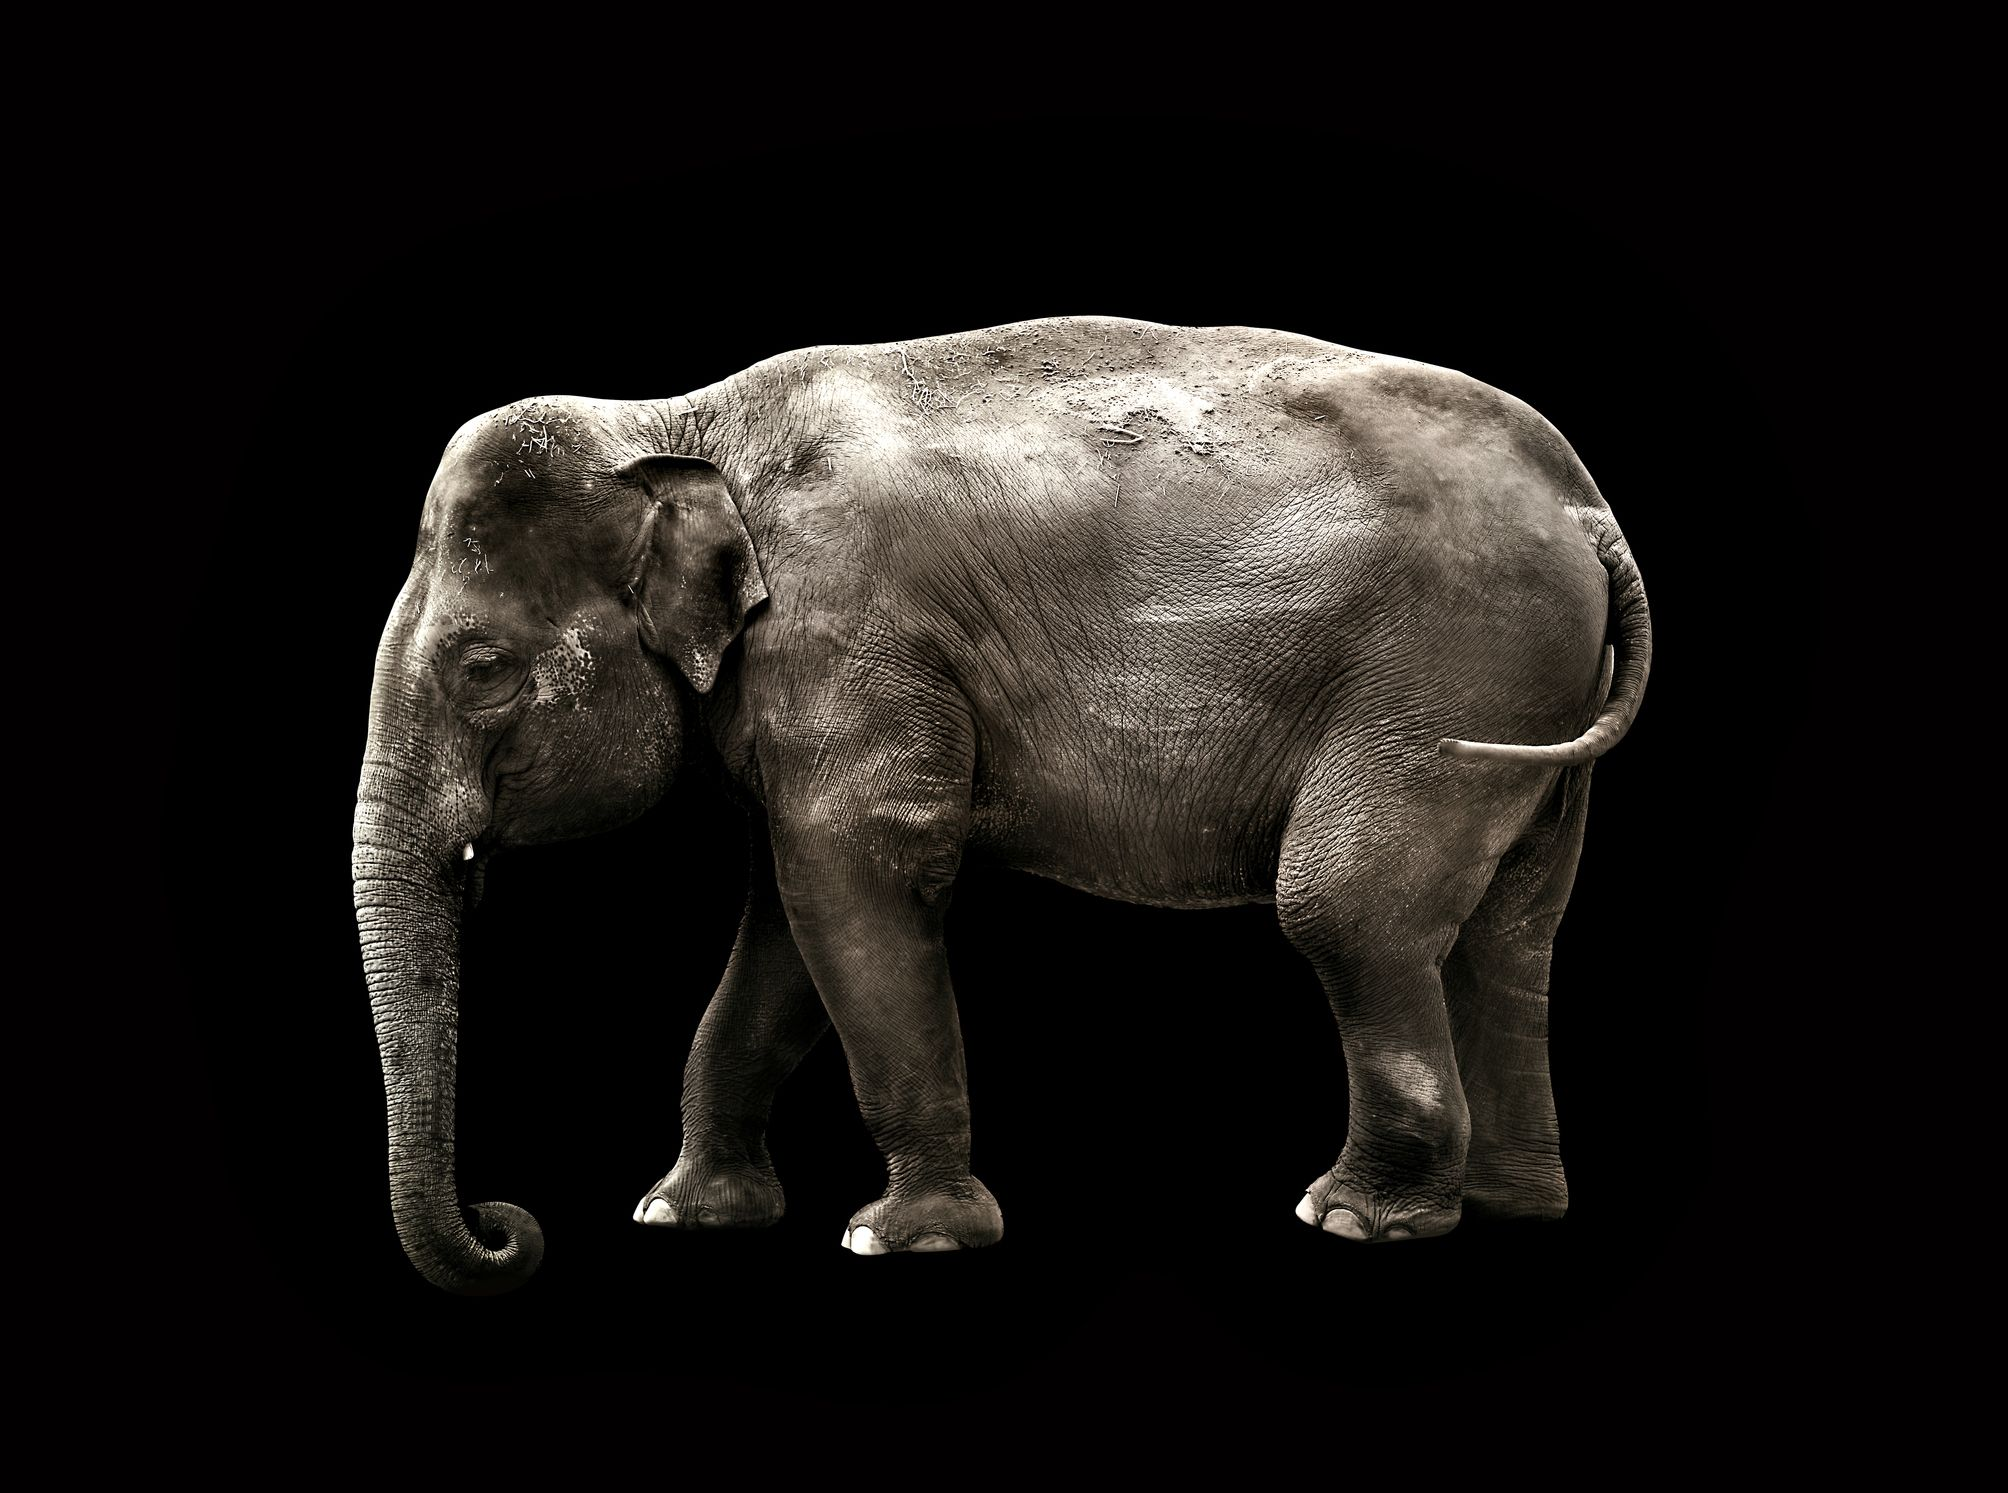 Not all elephants have tusks.